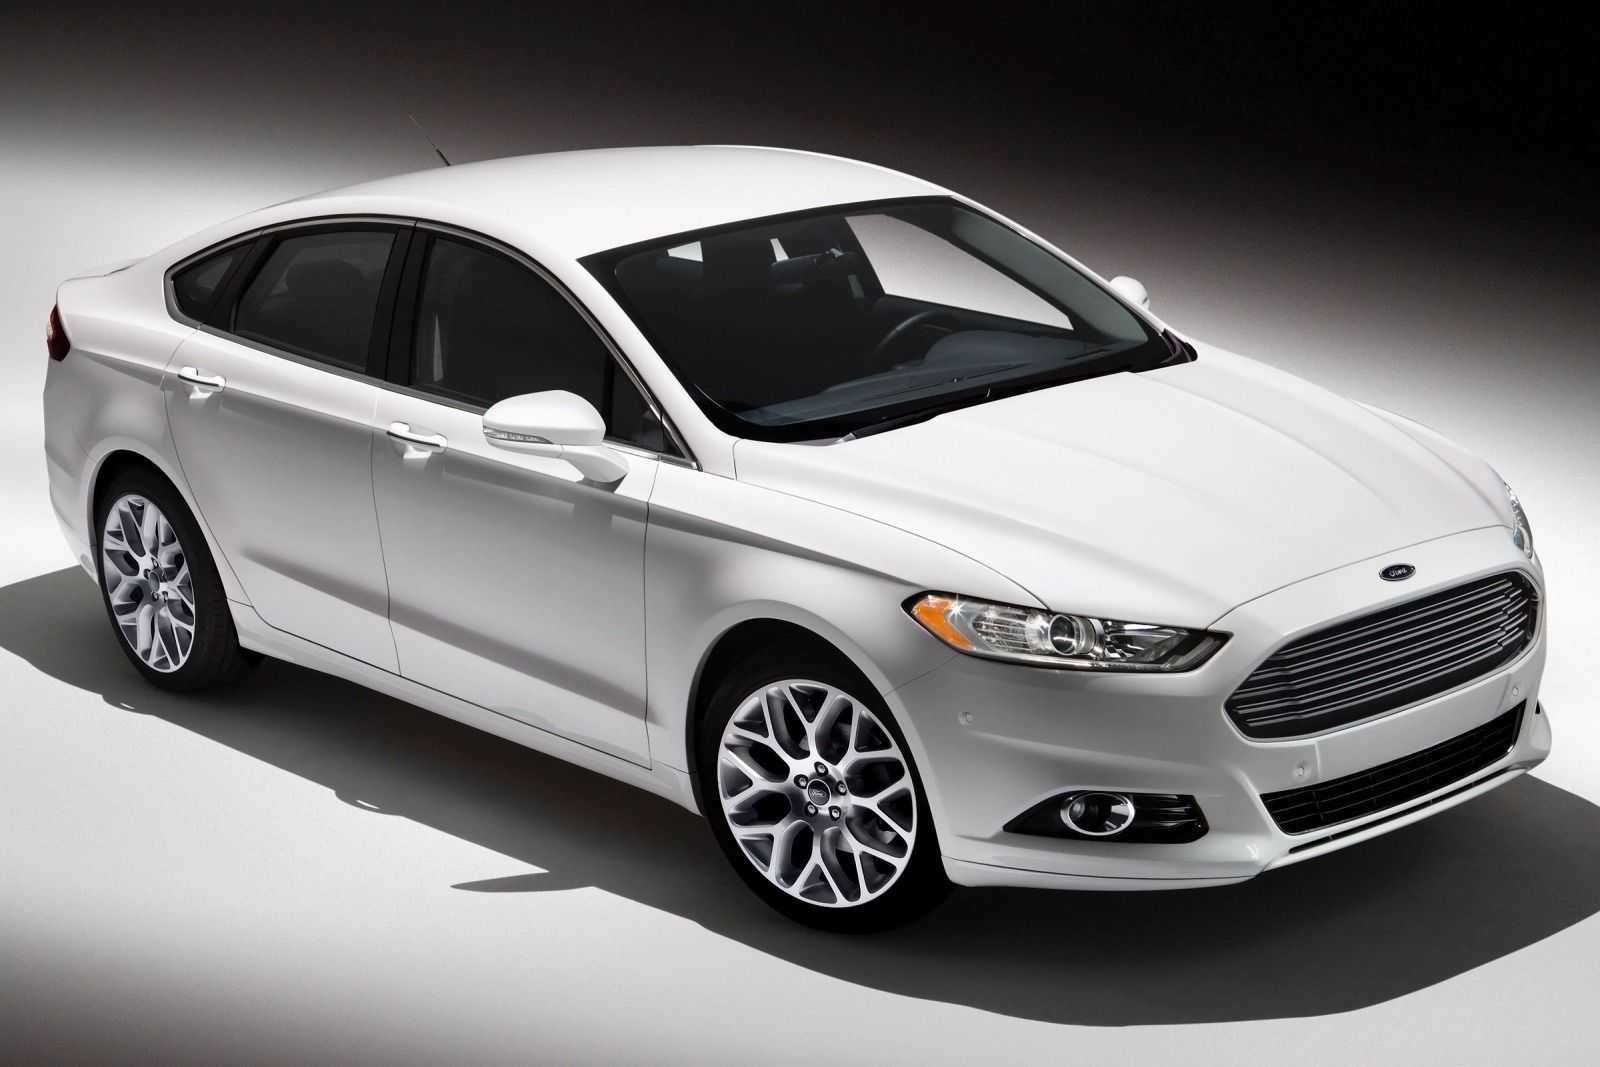 2016 ford fusion is the featured model the 2016 ford fusion s image is added in car pictures category by the author on jun